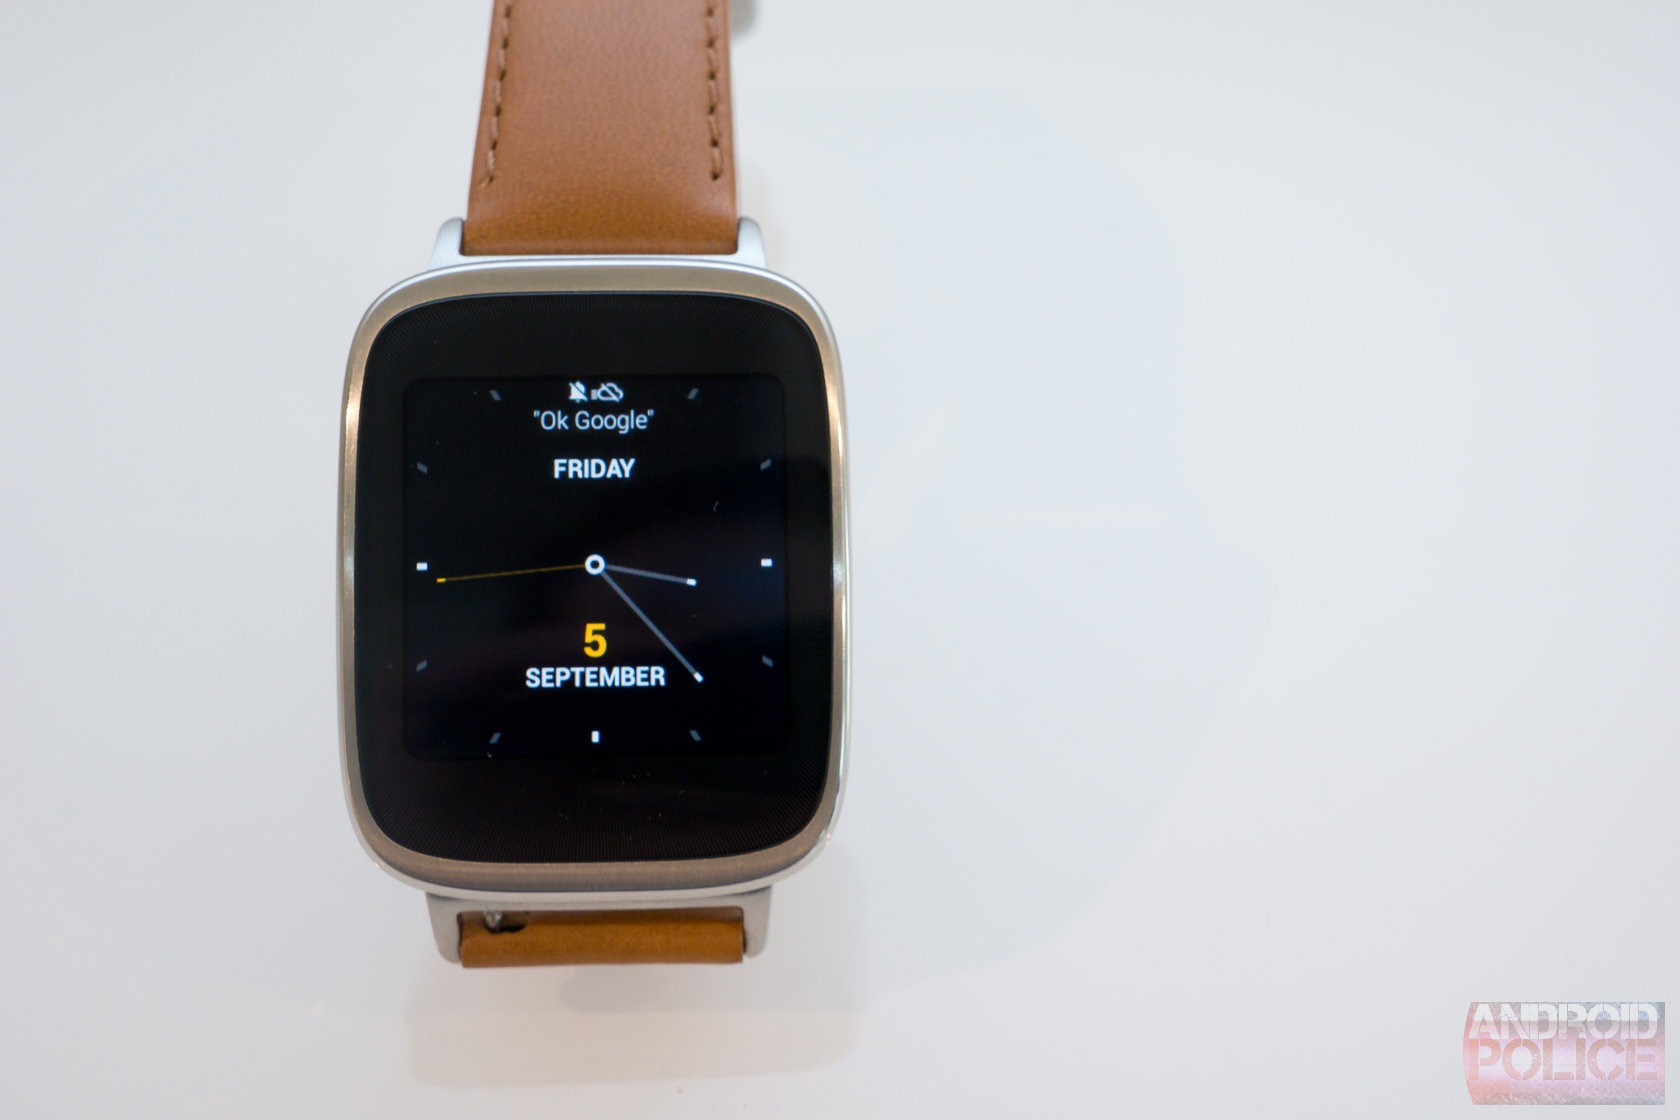 Phone Square Android Phone hands on with the asus zenwatch best square android wear watchs casing is metal and around edge an accented band of subtle color back smooth unoffending sitting